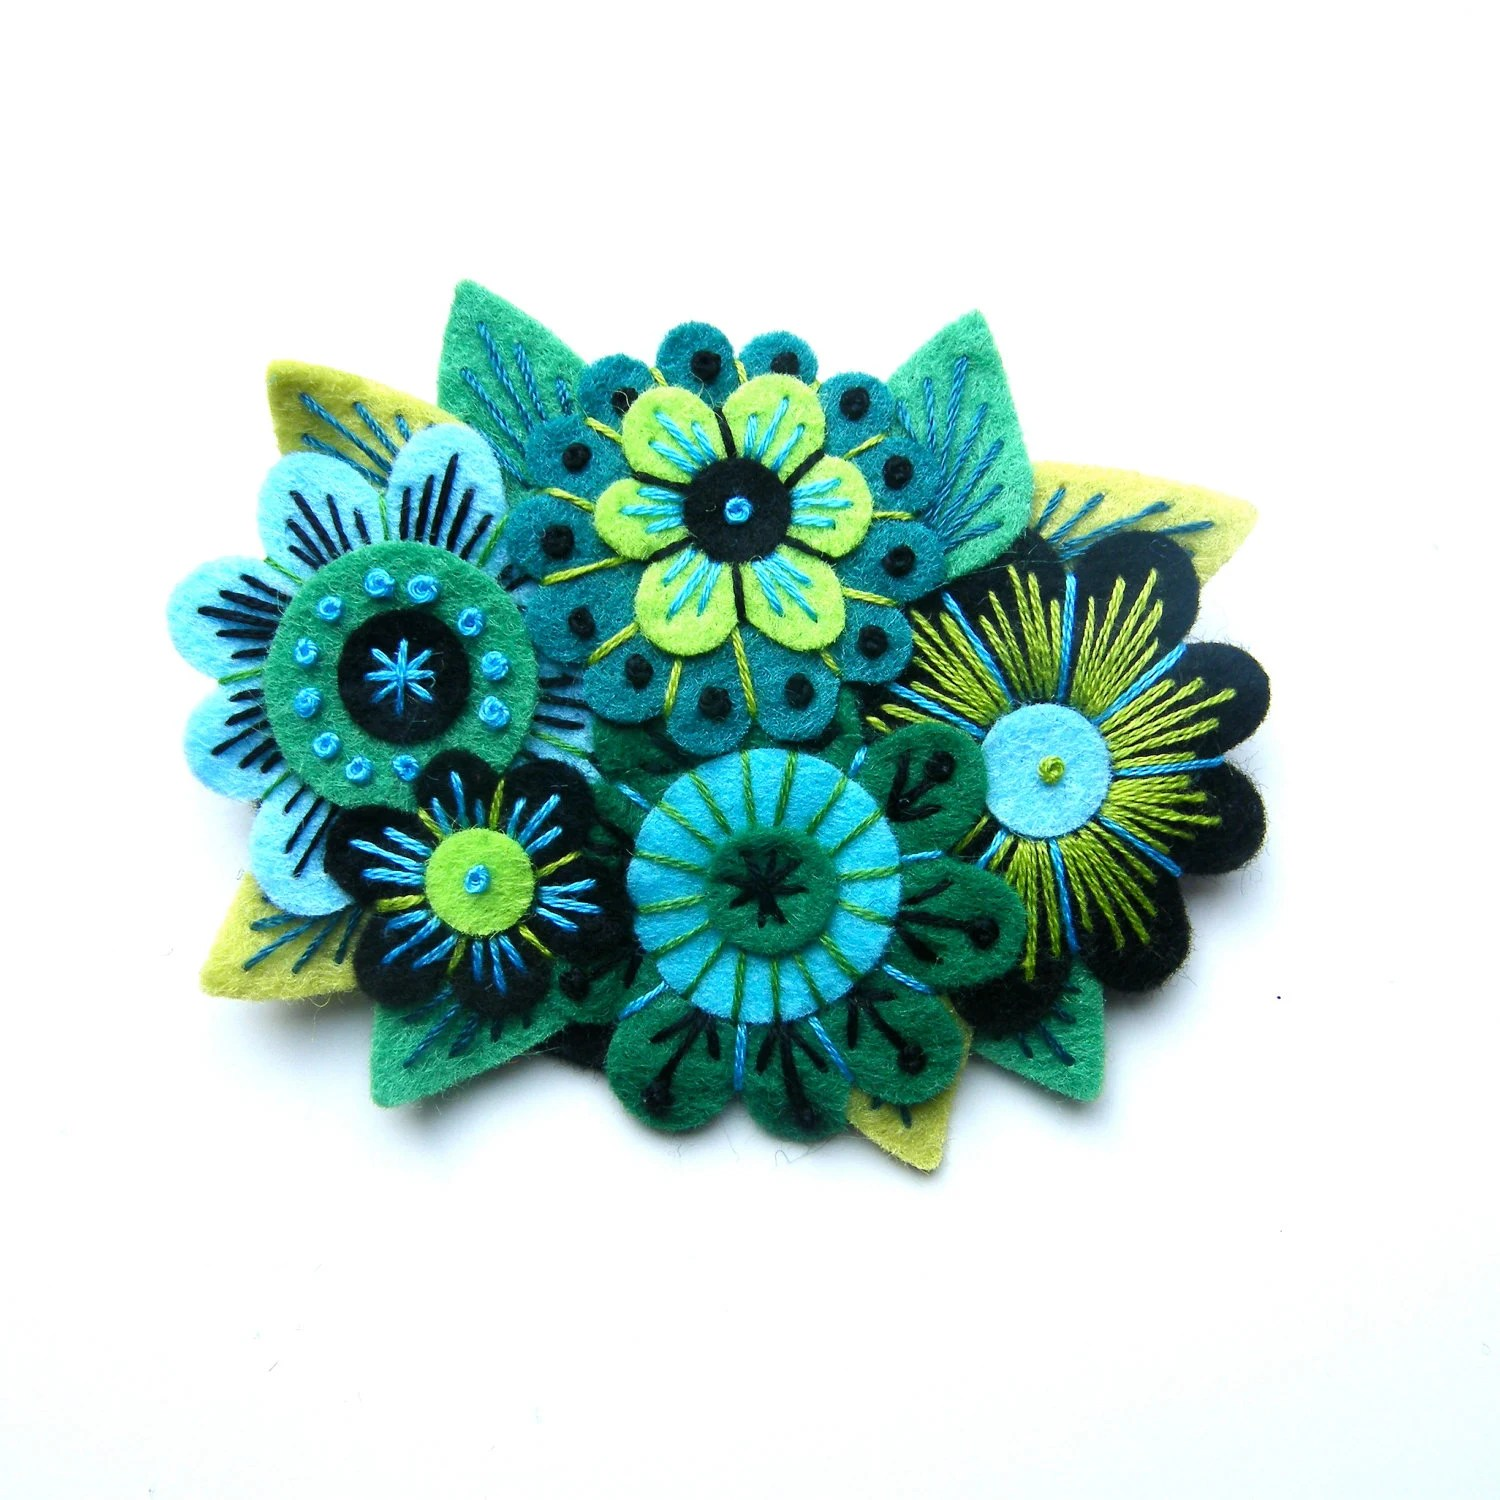 Vintage Bouquet felt flower brooch with freeform hand embroidery